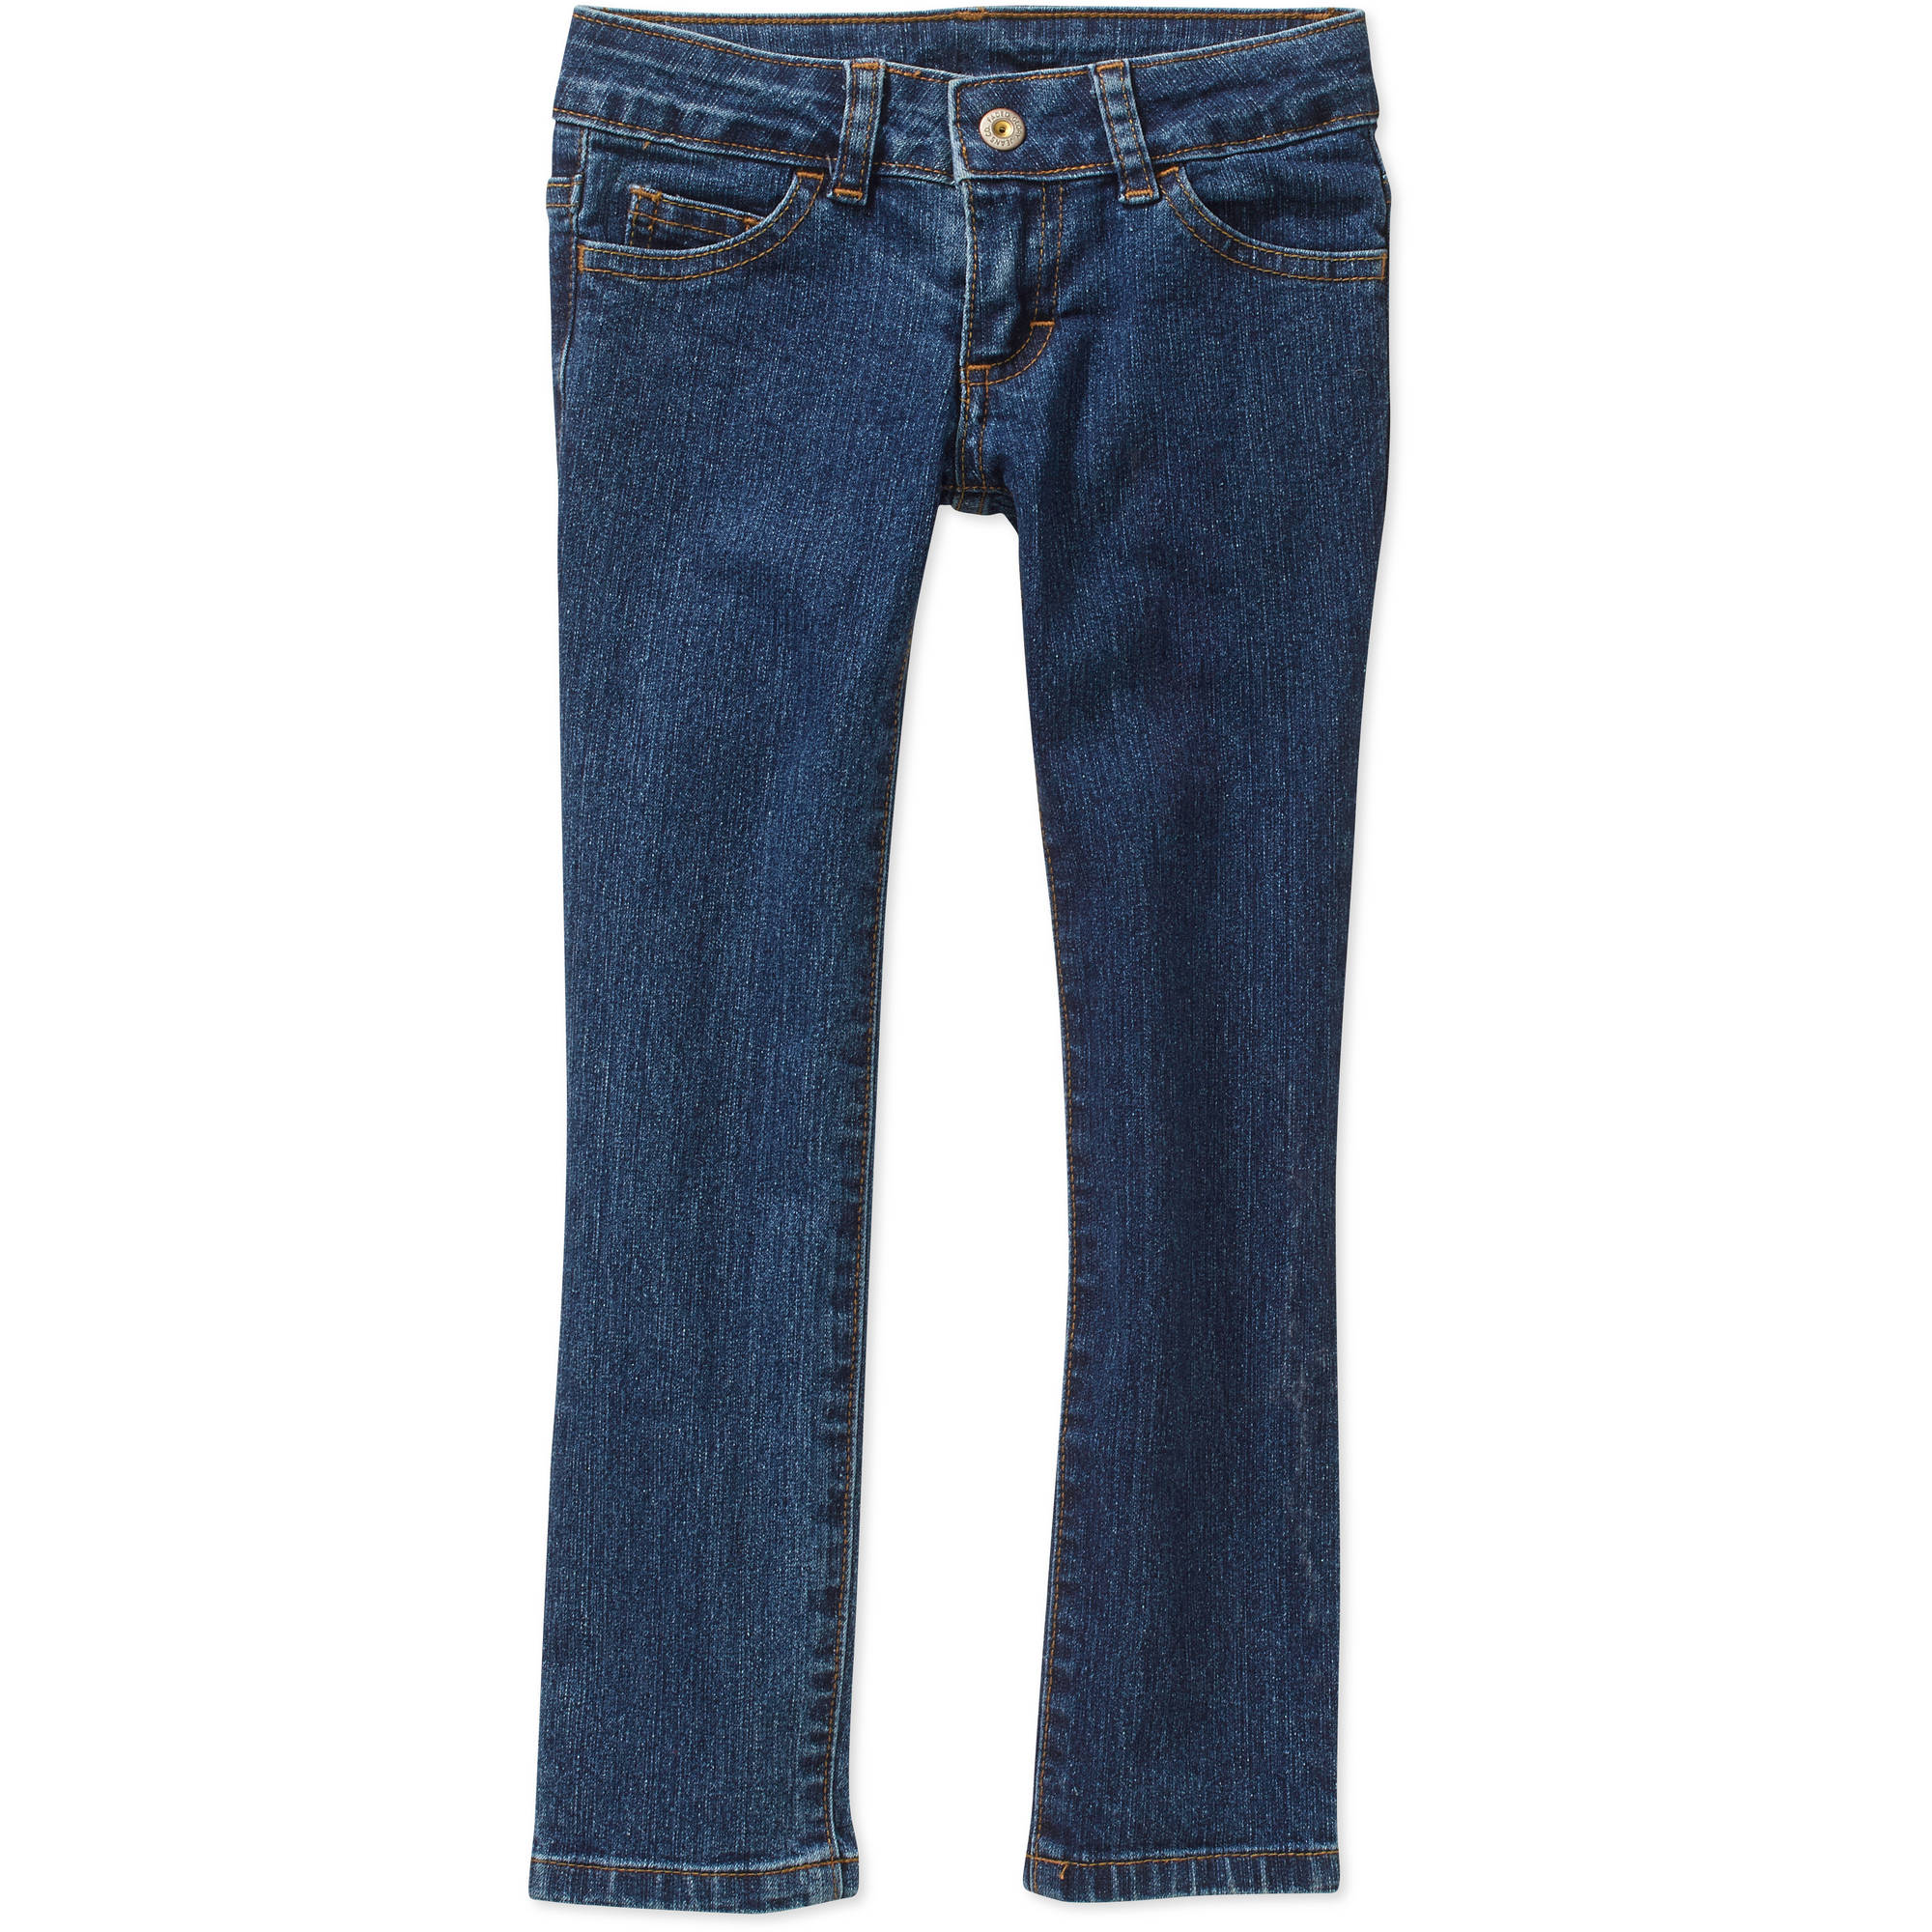 Faded Glory Girls' Skinny Jean - Walmart.com